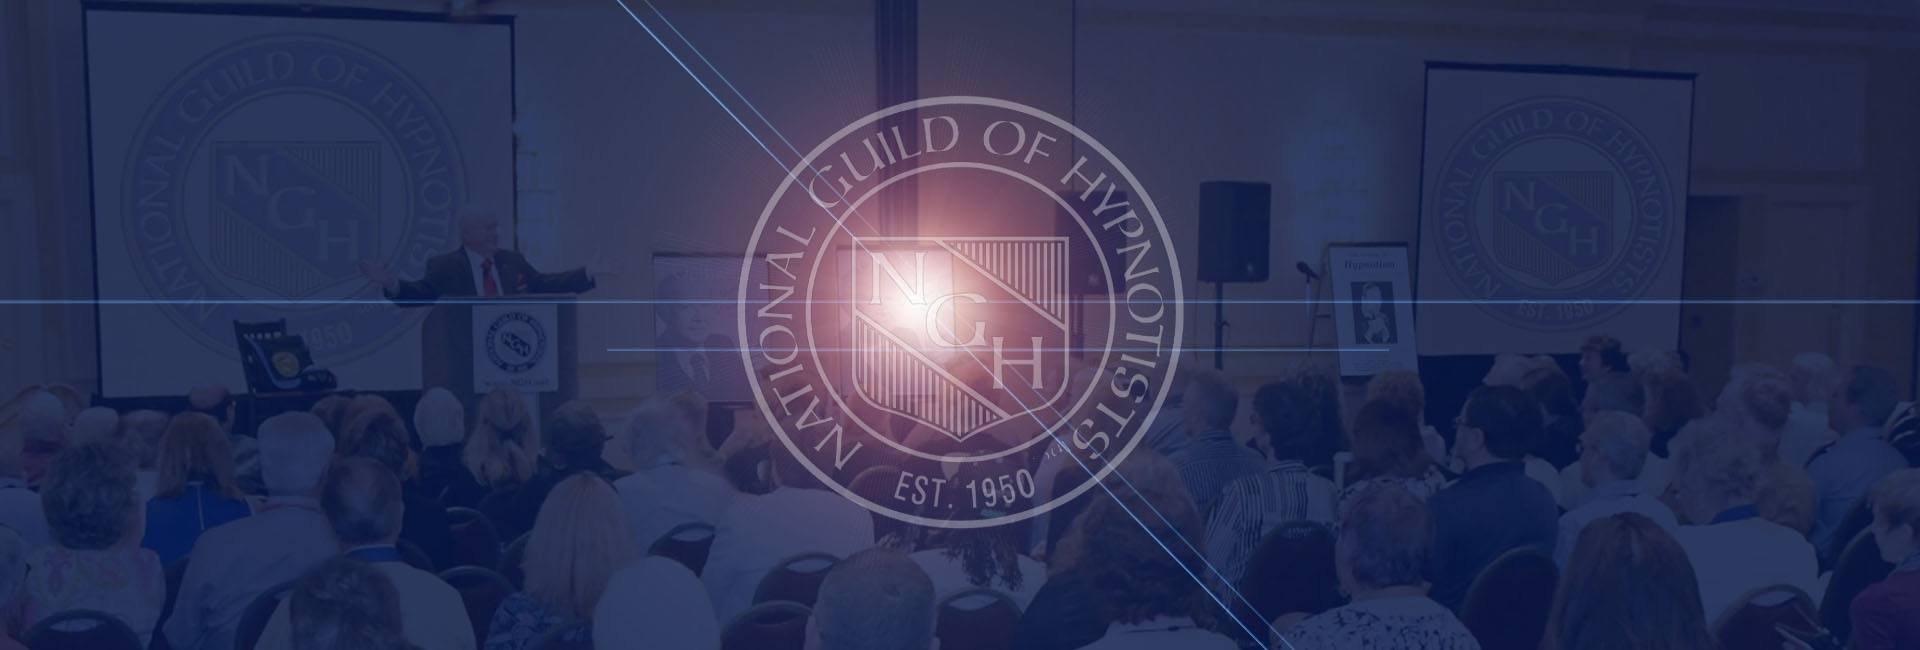 Welcome to the National Guild of Hypnotists - NGH net